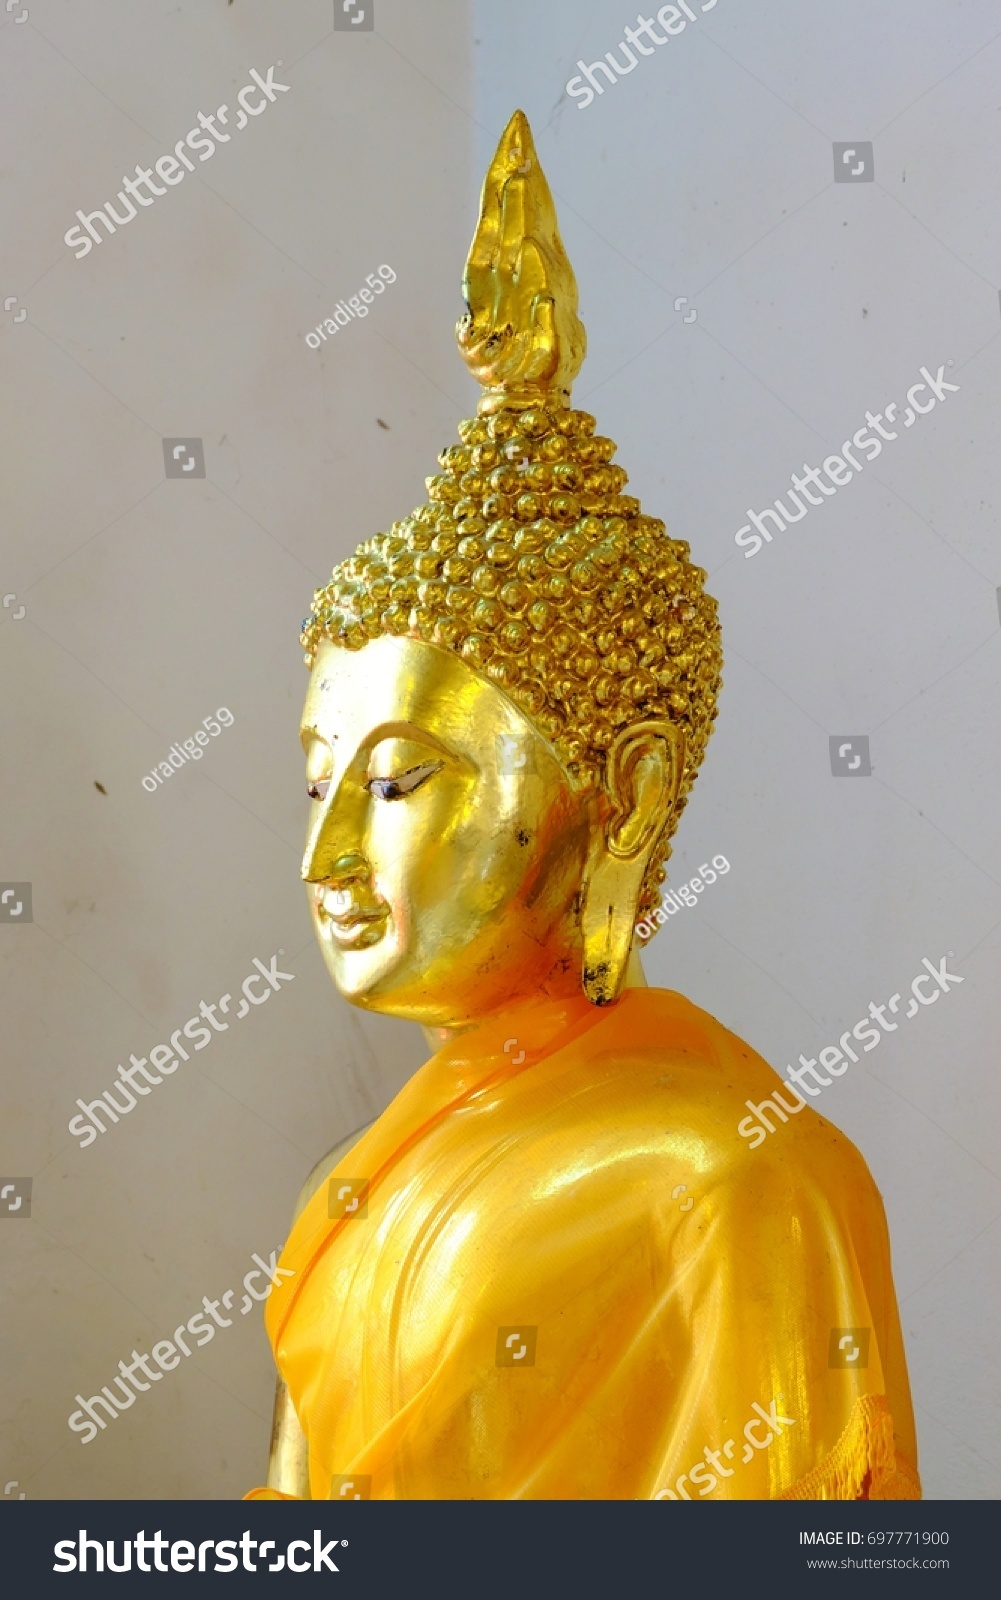 Ancient Golden Buddha Temple White Wall Stock Photo (Royalty Free ...